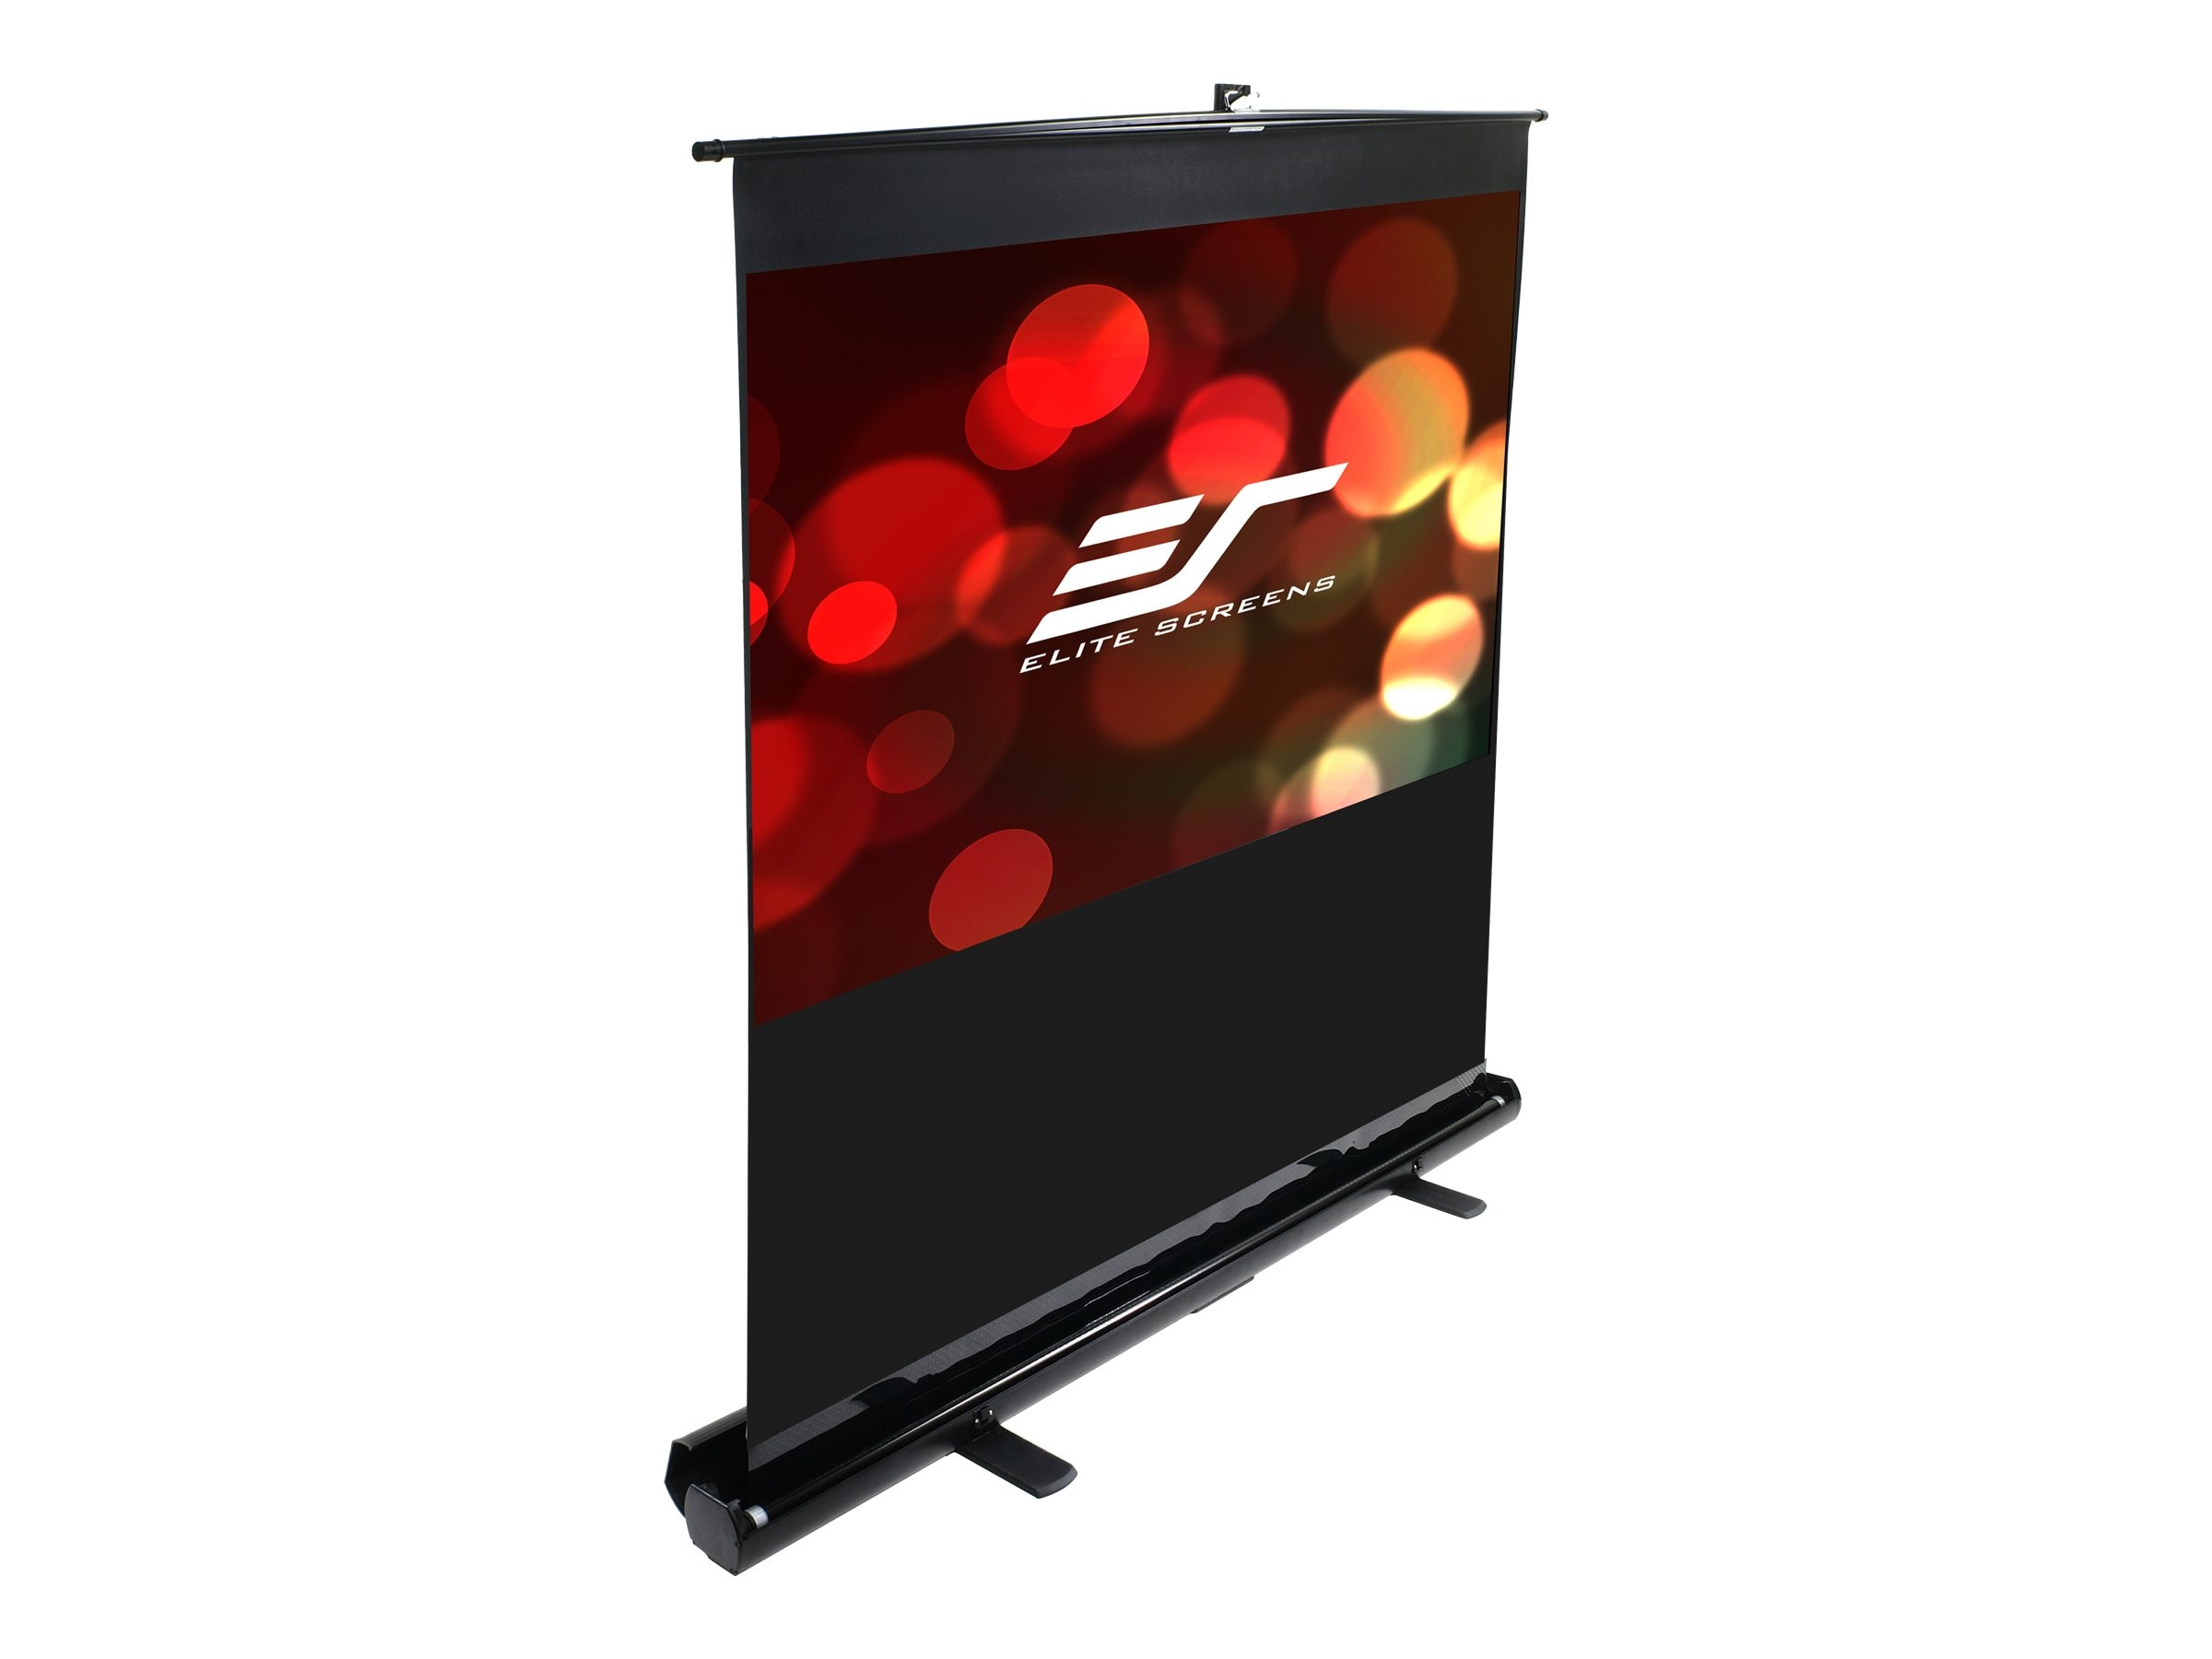 Elite ezCinema Series Projection Screen, MaxWhite, 4:3, 135, F135NWV, 12579494, Projector Screens